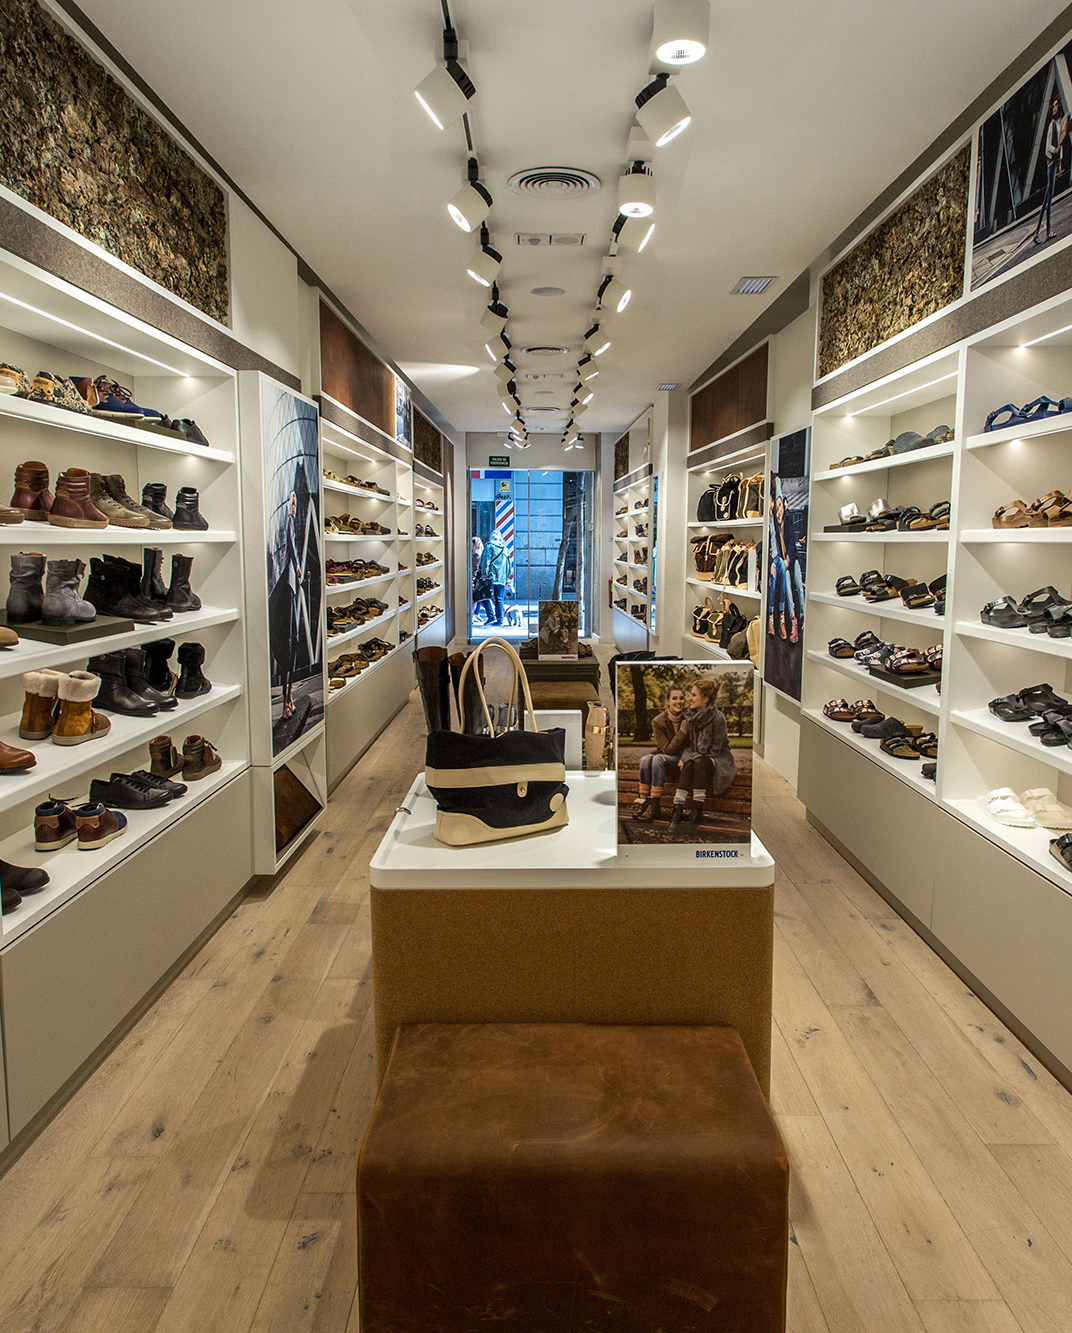 0ae15165 First Brand Store in Spain: BIRKENSTOCK Opens Outlet on Madrid's Popular  Calle Fuencarral